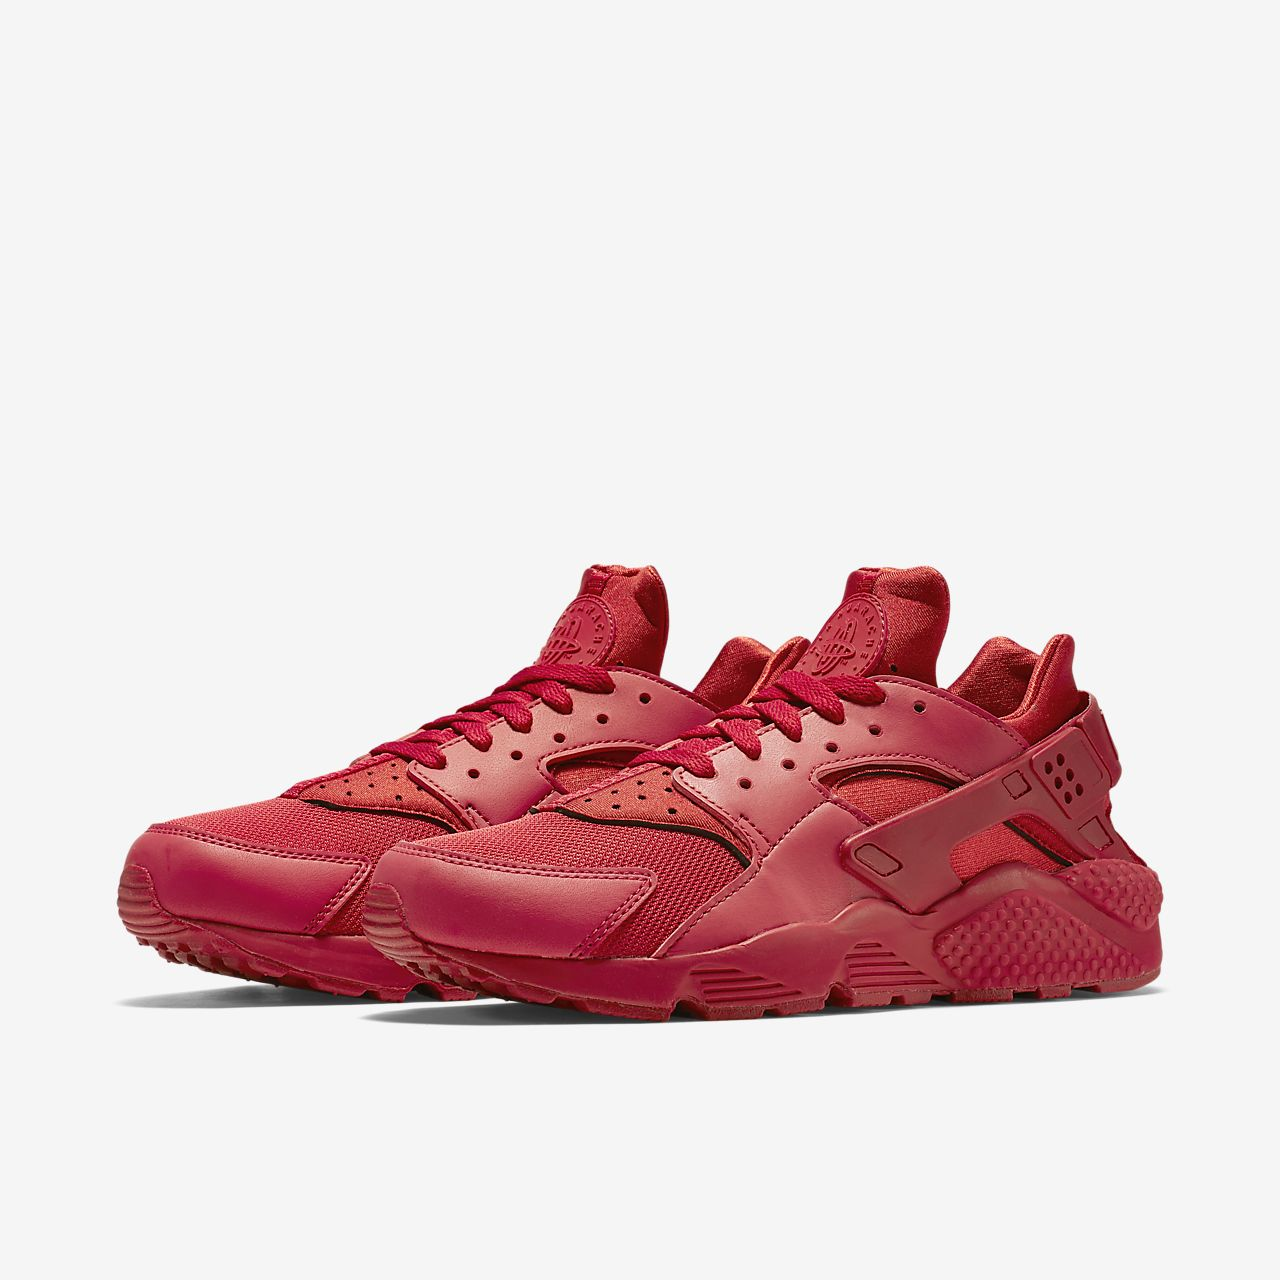 new product 531c2 744ff ... Nike Air Huarache Men s Shoe